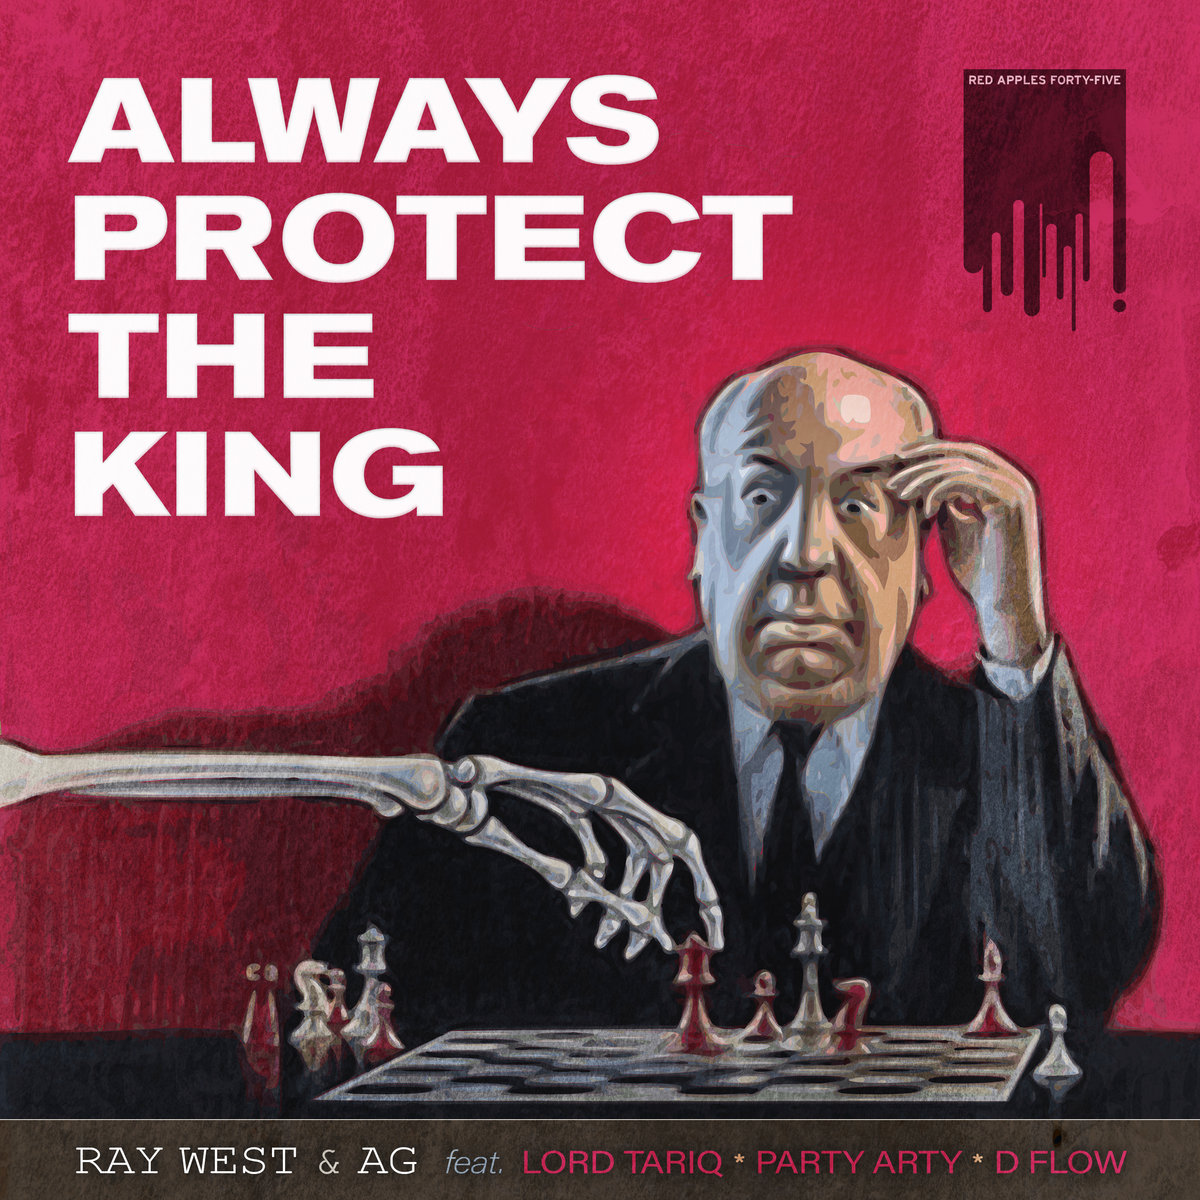 Always_protect_the_king_ray_west___ag_of_ditc